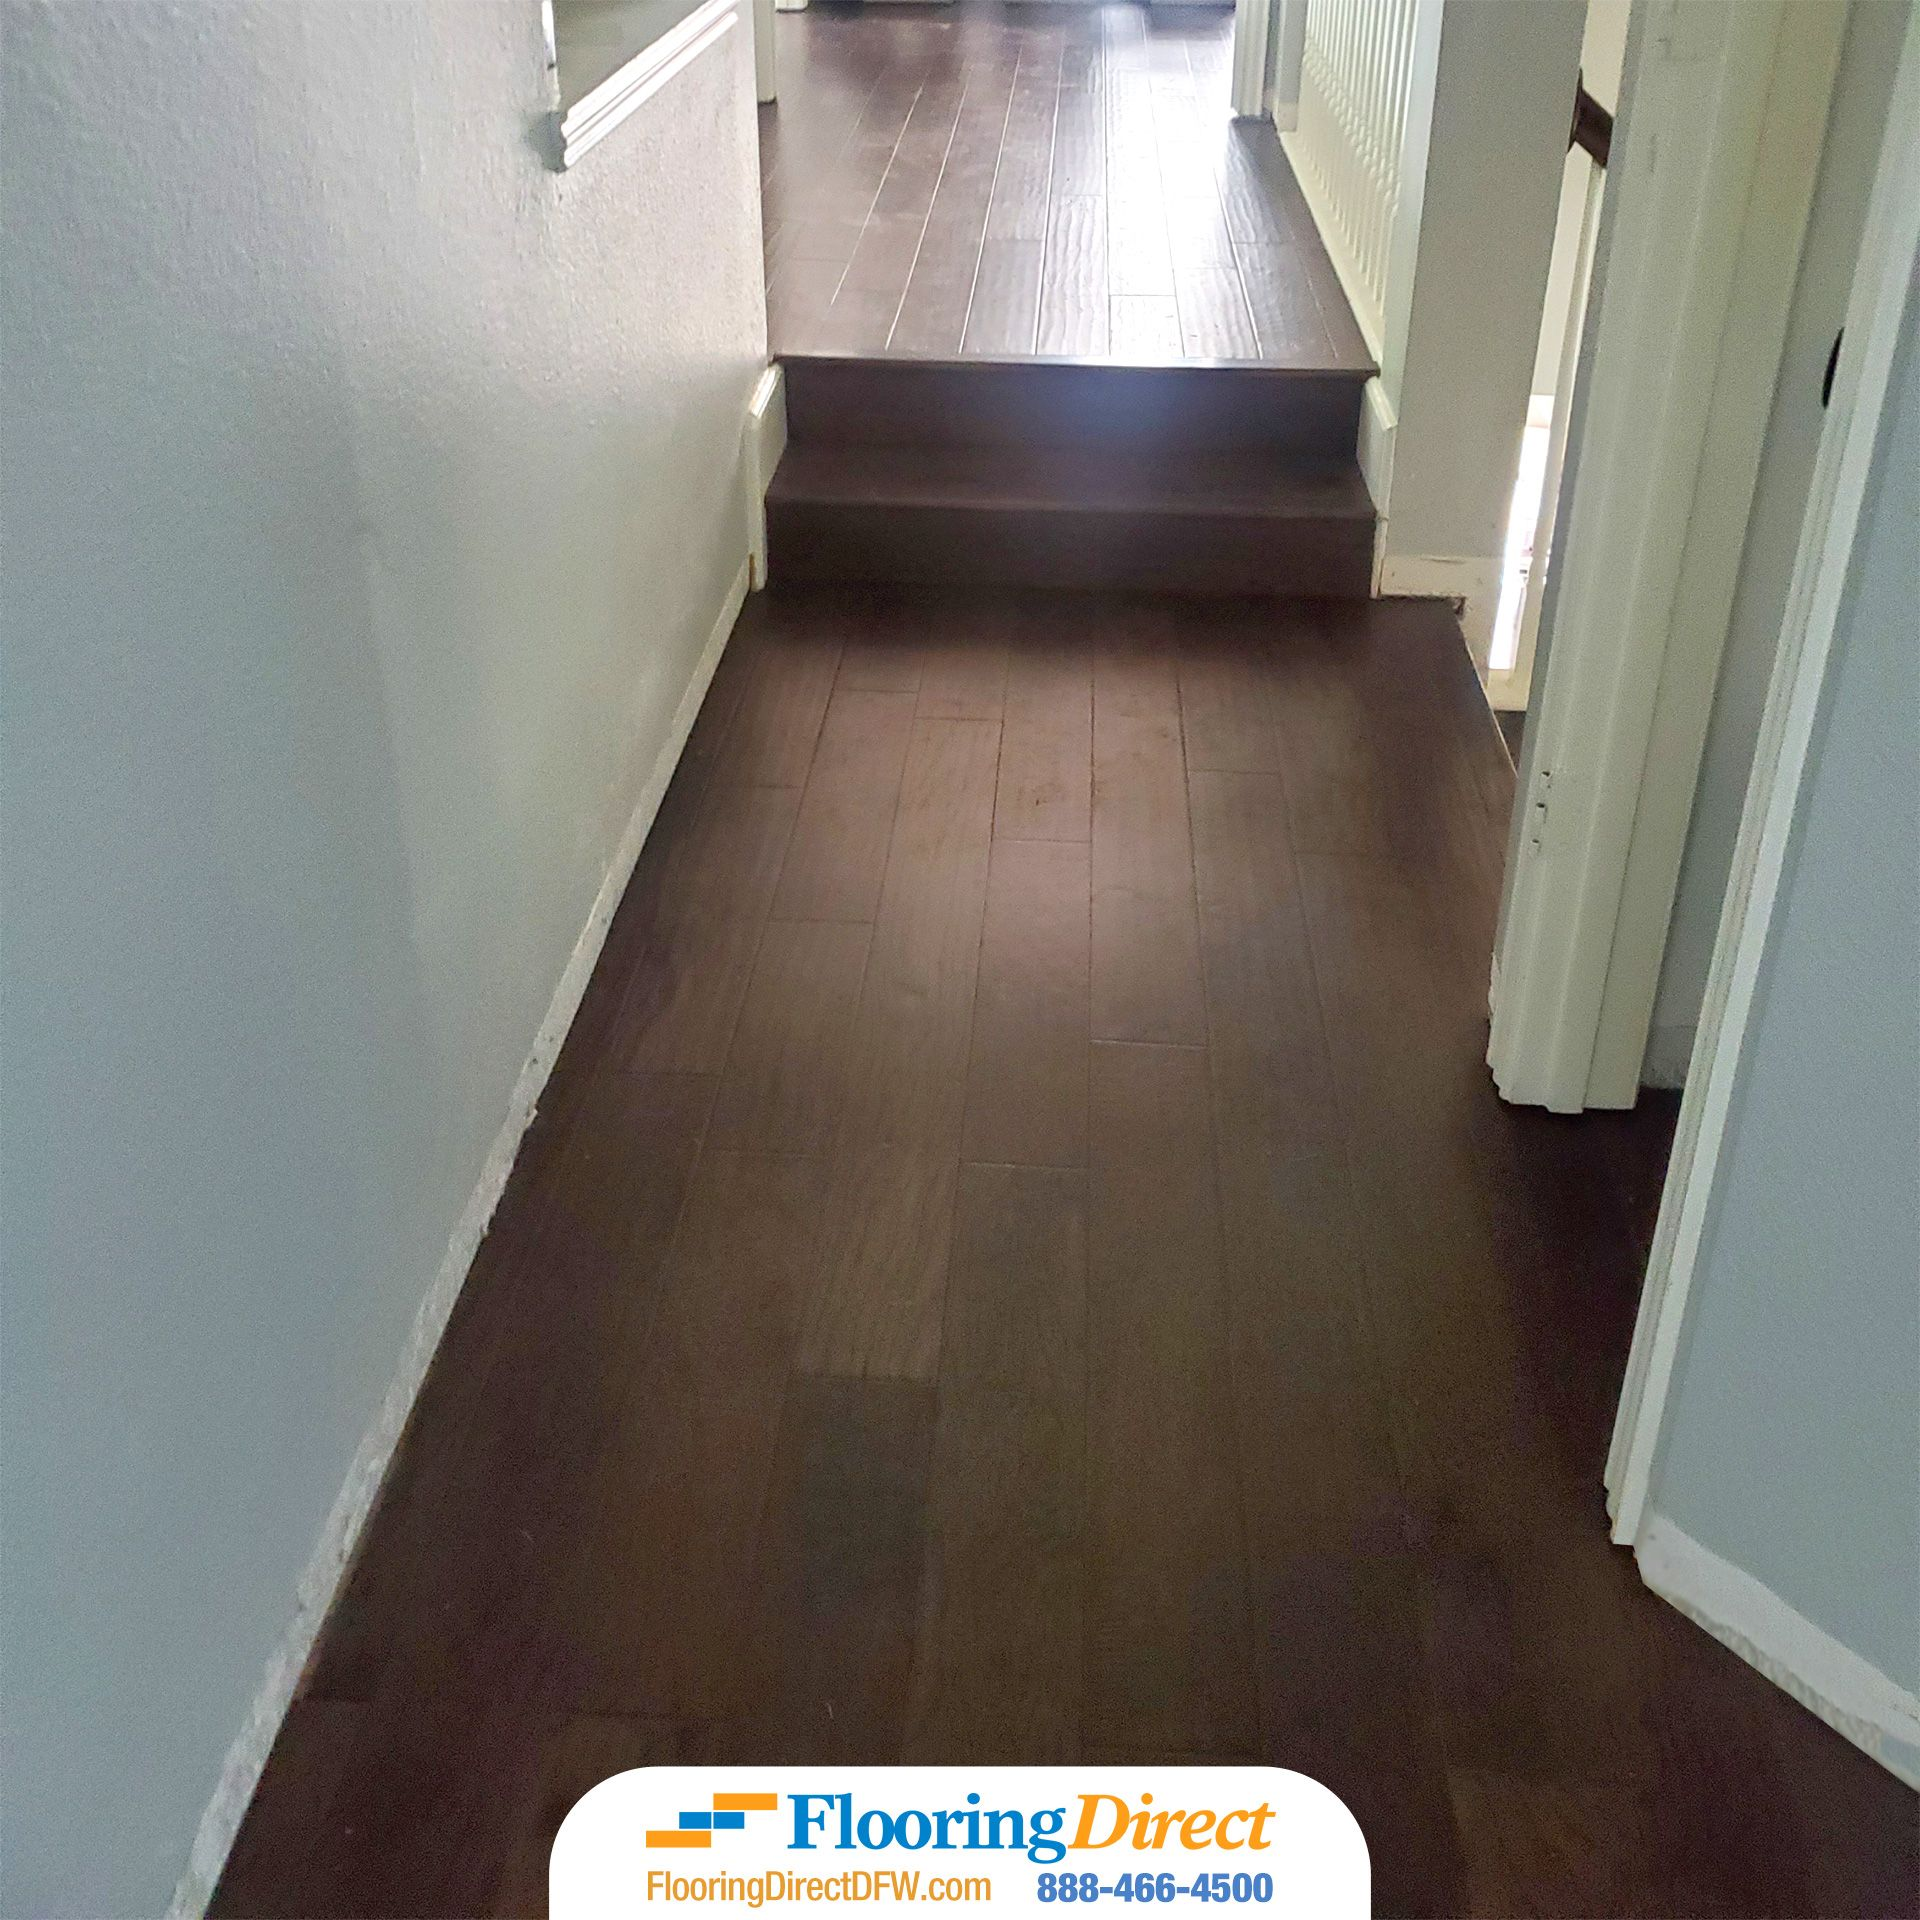 Get Hardwood For As Low As 6 48 Sqft Installed In 2020 Hardwood Floors Hardwood Flooring